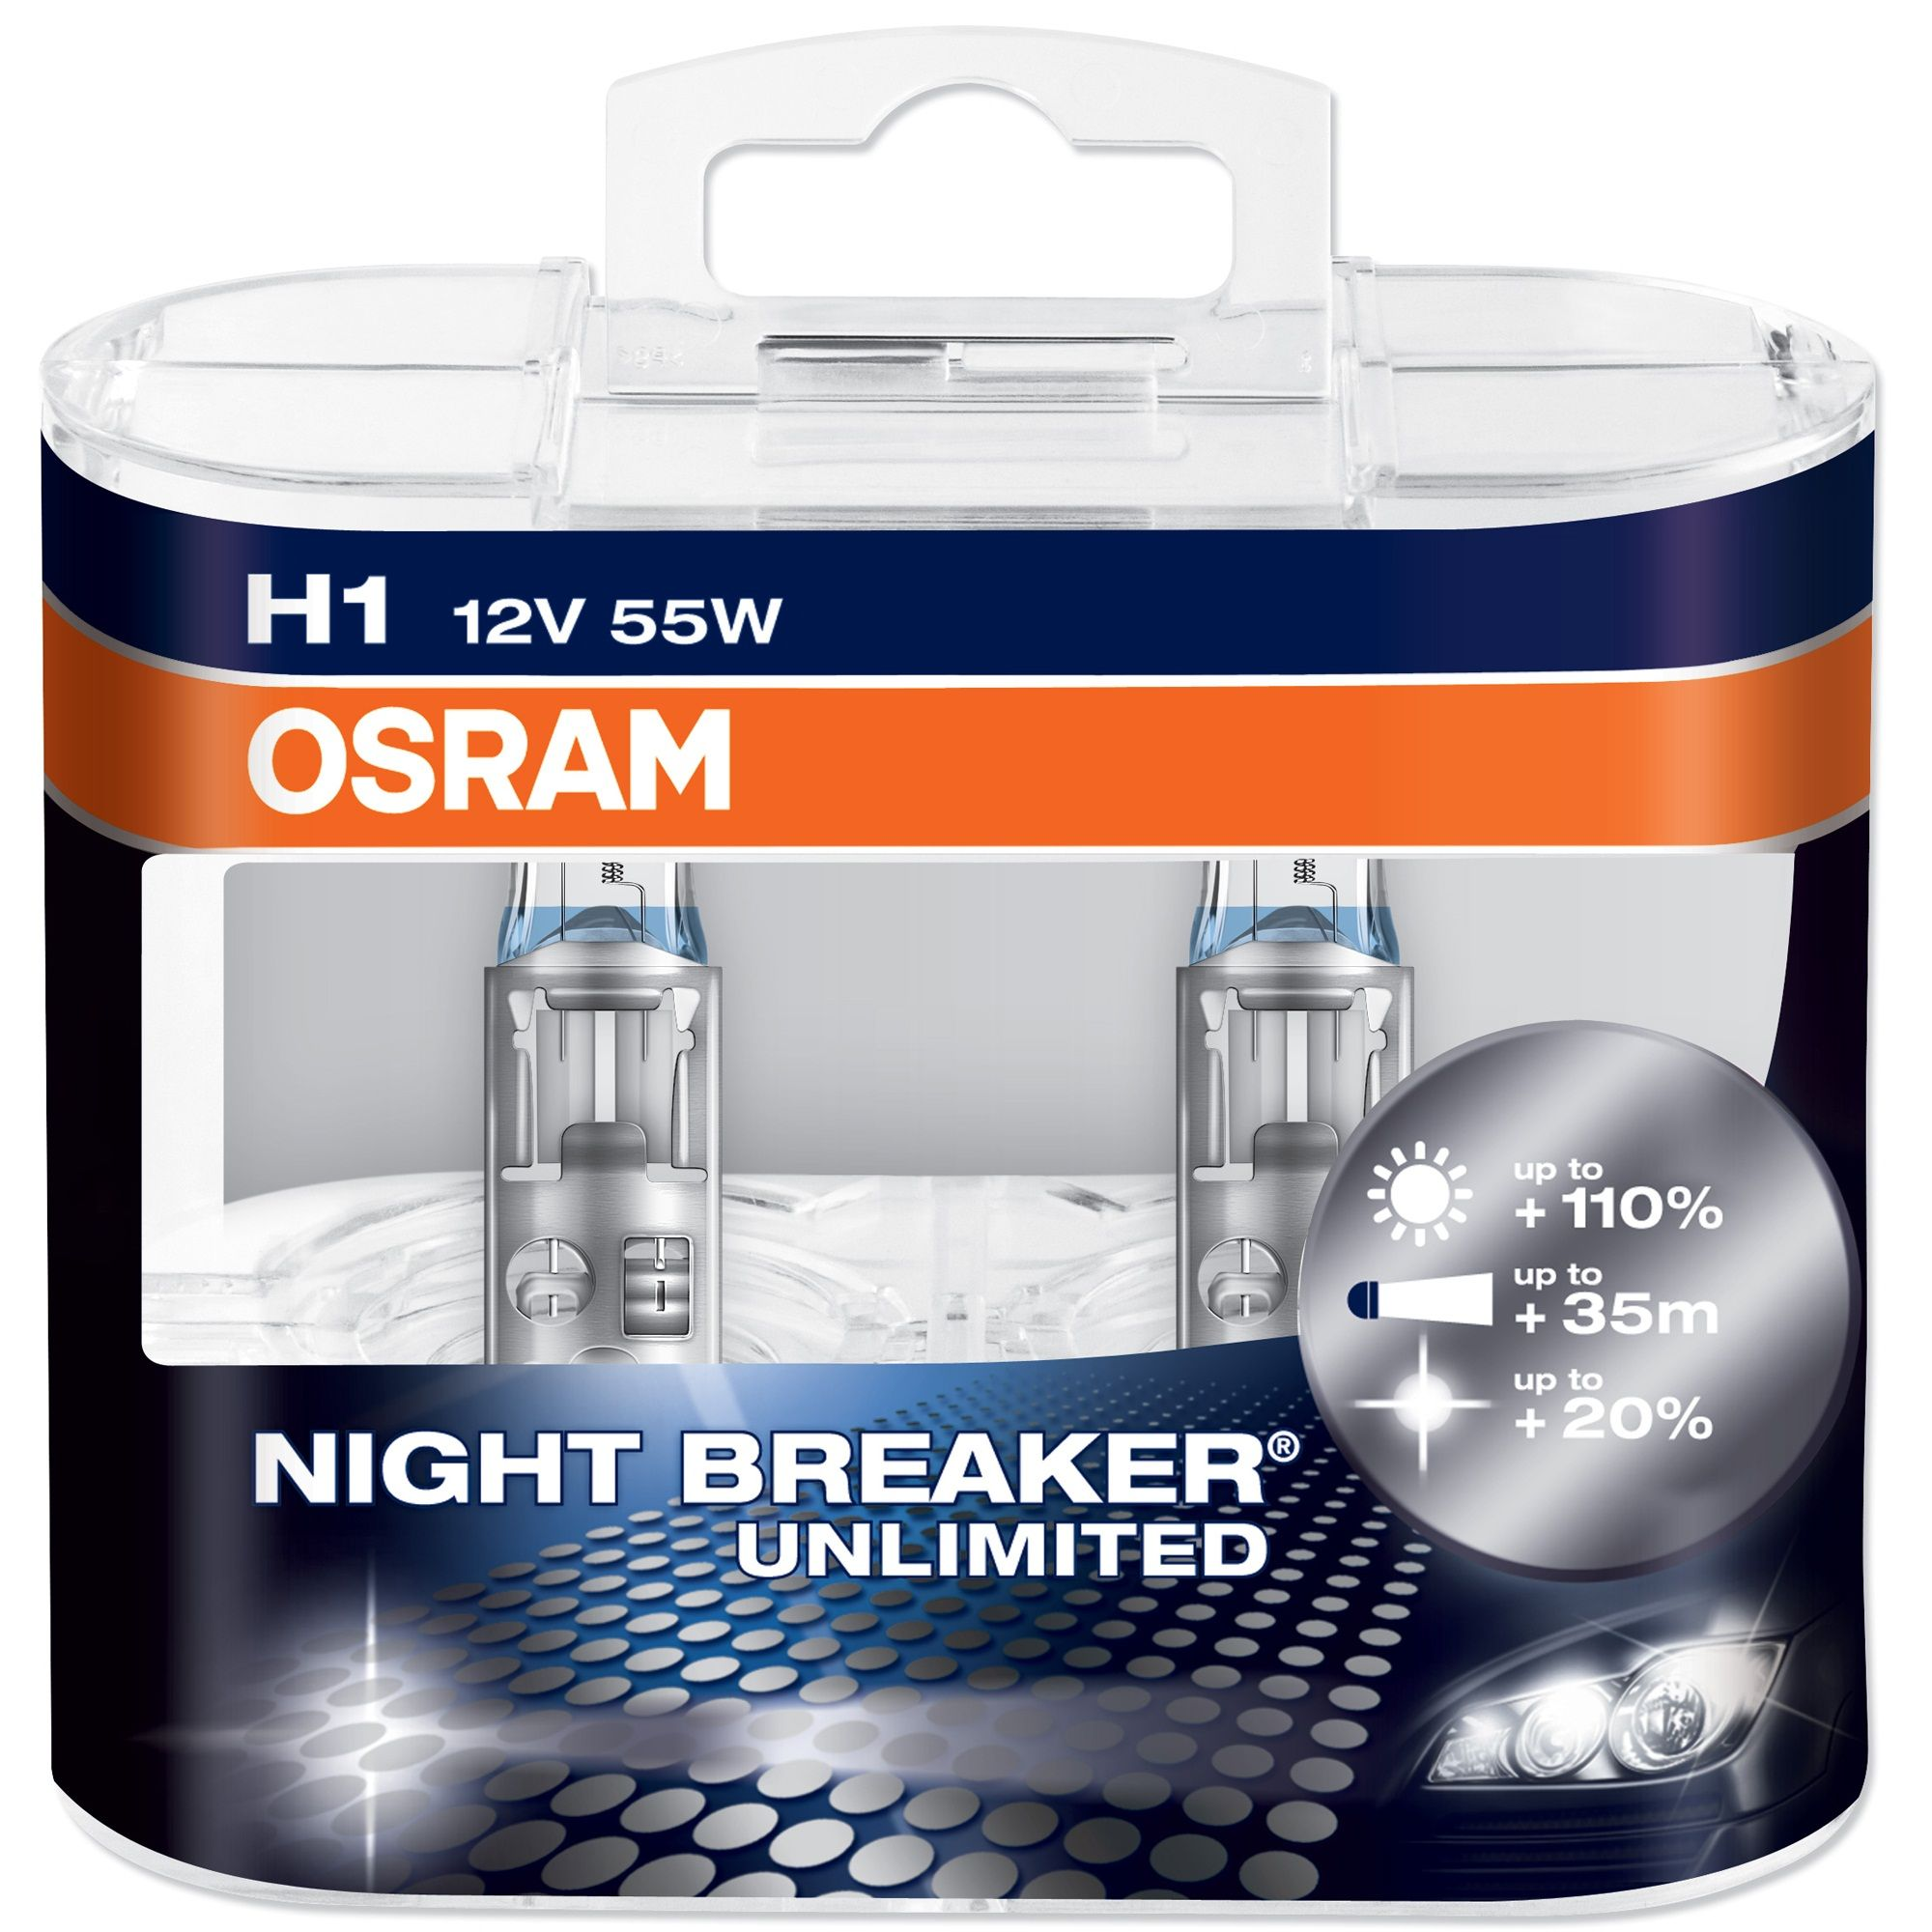 Becuri auto H1 far halogen Osram Night Breaker Unlimited 12V 55W P14.5s set de 2 buc